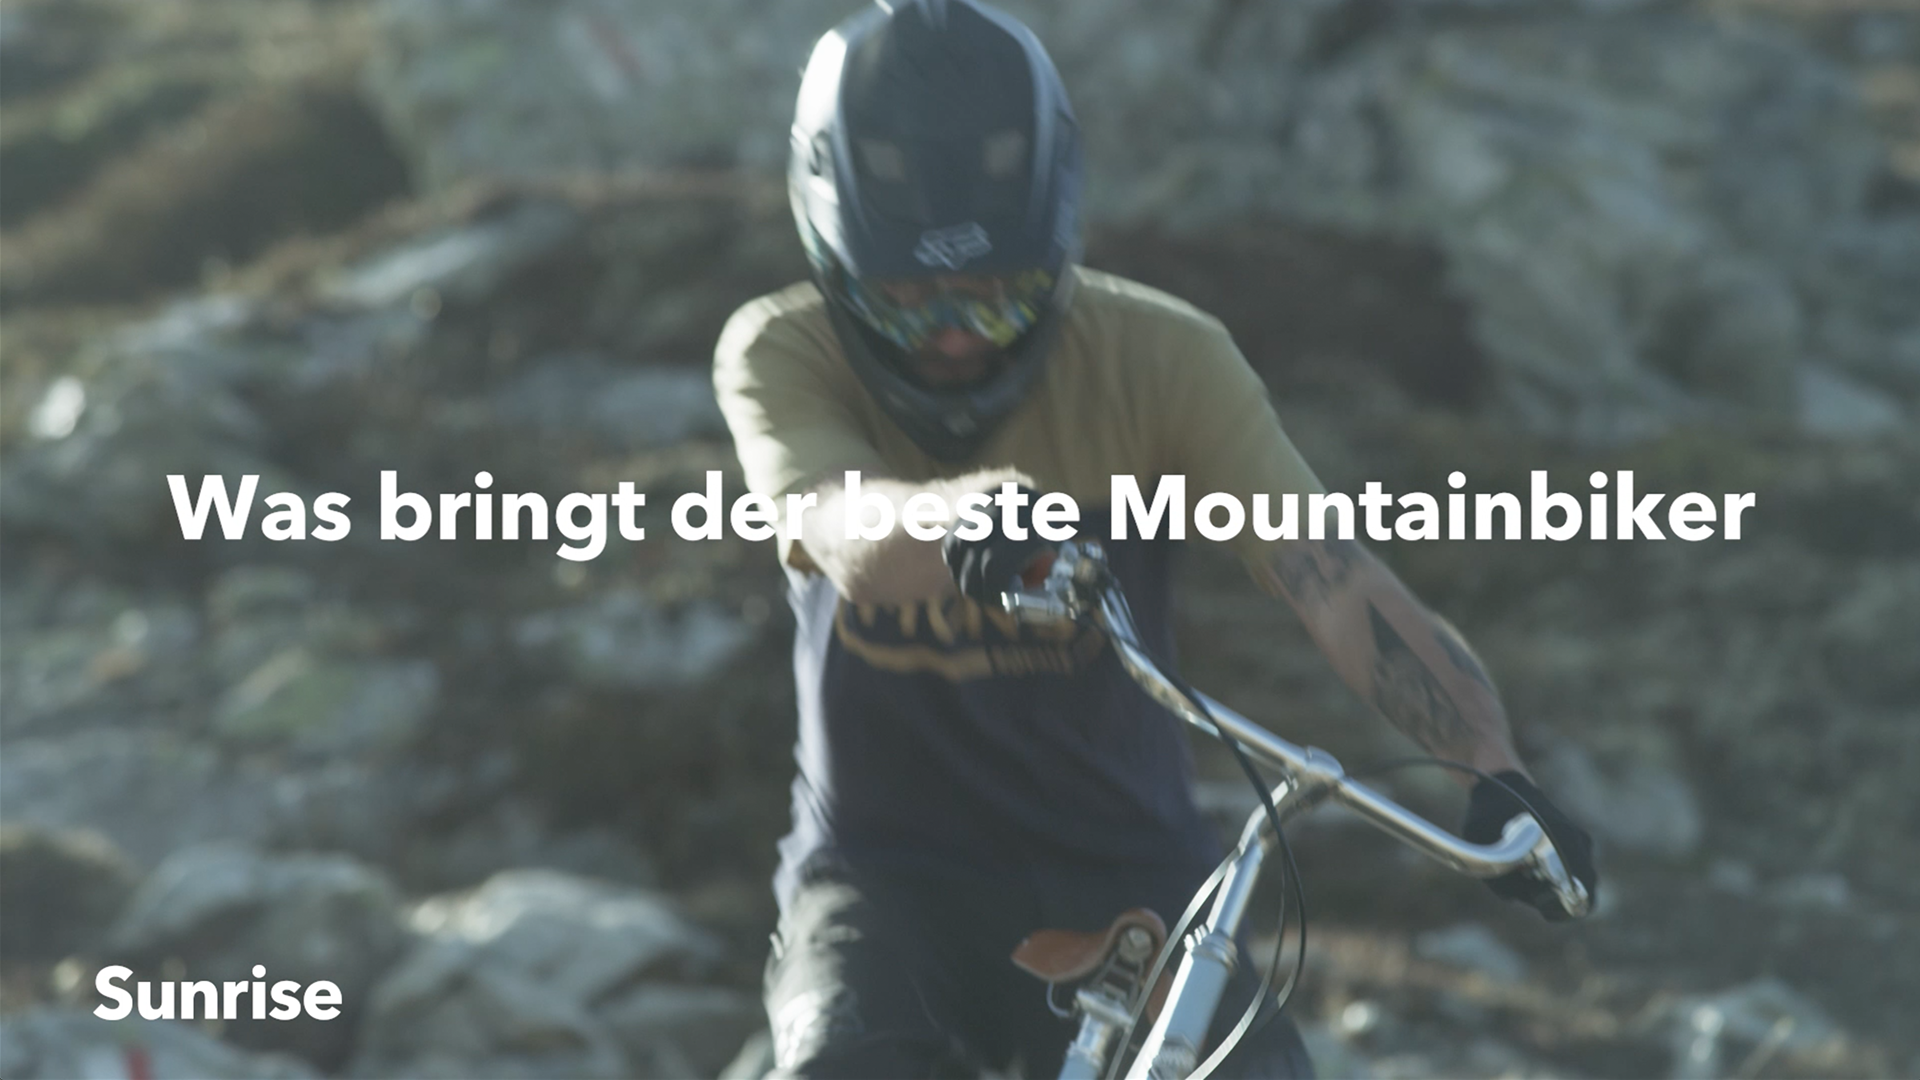 Front Close-Up of a Mountainbiker on a City Bike riding down a steep mountian